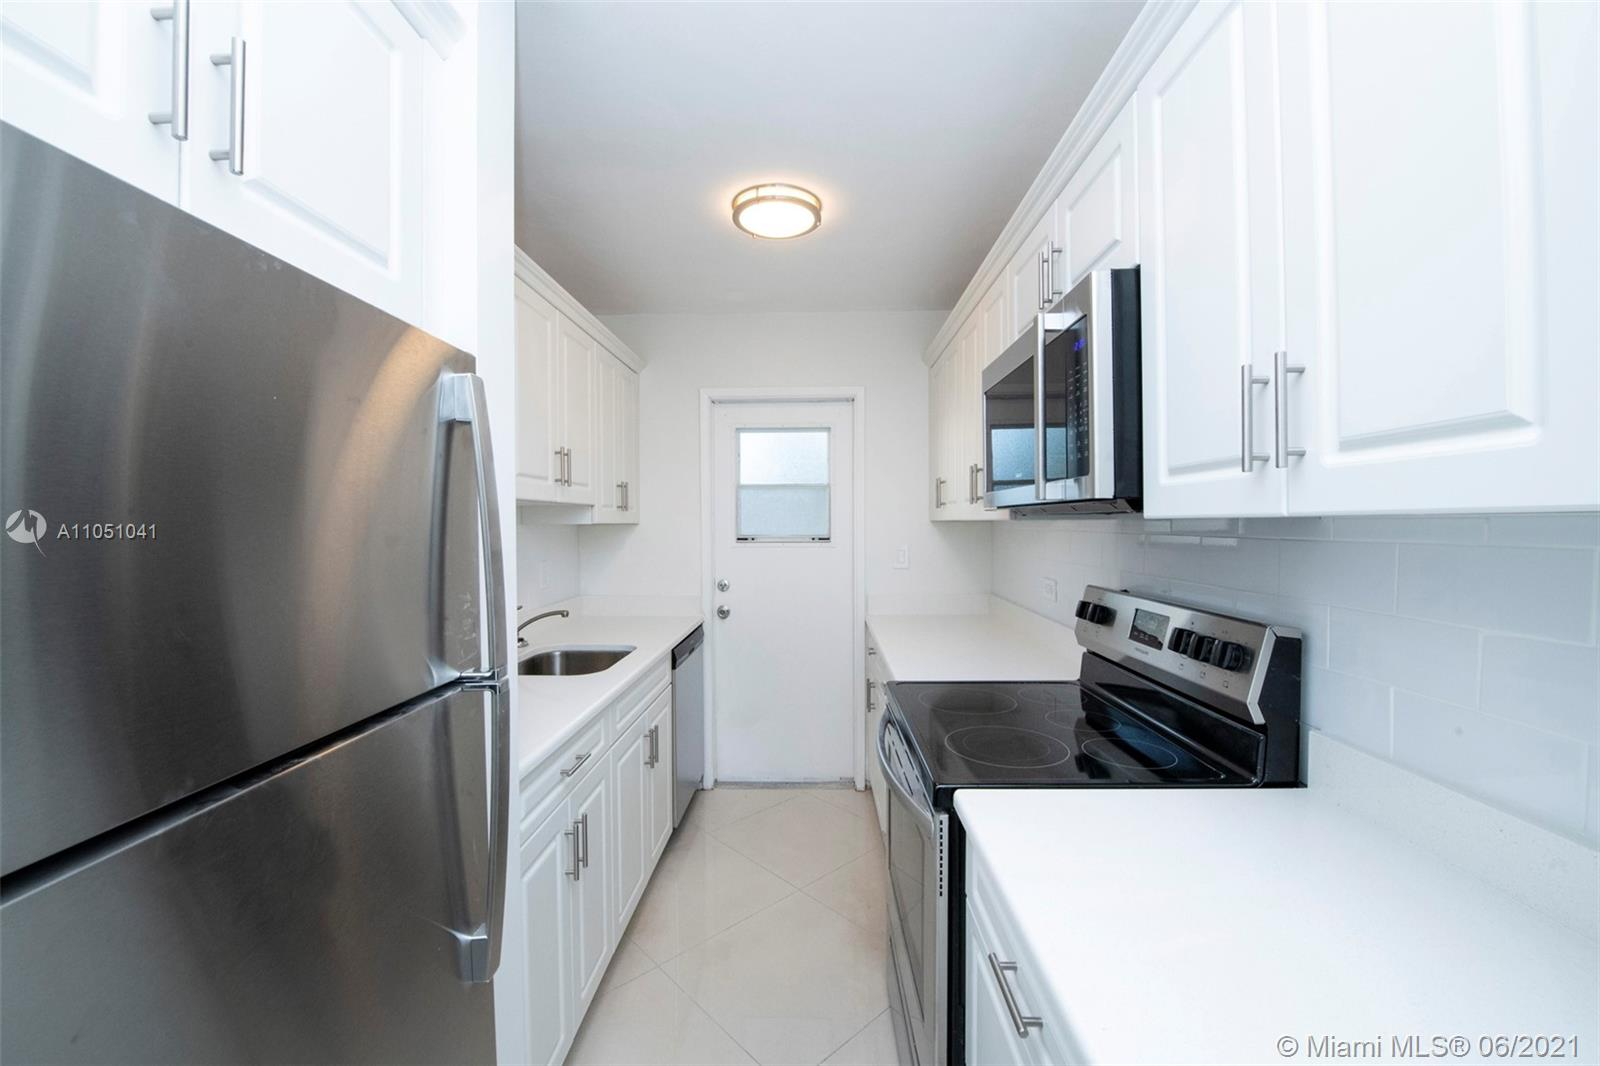 55+ community! Come step inside this hidden gem located in Cliff Lake Villas! This BEAUTIFUL 1 bedroom unit is conveniently located on the first floor and has been tastefully updated throughout! BRAND NEW updated kitchen with white wood cabinets, white subway tile backsplash, granite countertops and new stainless steel appliances. BRAND NEW white porcelain tile flooring. Updated bathroom! Impact windows with spectacular pool views. Enjoy the lush landscaping directly from your screened patio overlooking the lake. A true peaceful oasis located in the heart of Fort Lauderdale. Near restaurants, shopping, beaches & more all within walking distance. Walk to the intercoastal waterway and water taxi. Amenities include private pool, lake, shuffleboard and BBQ area.